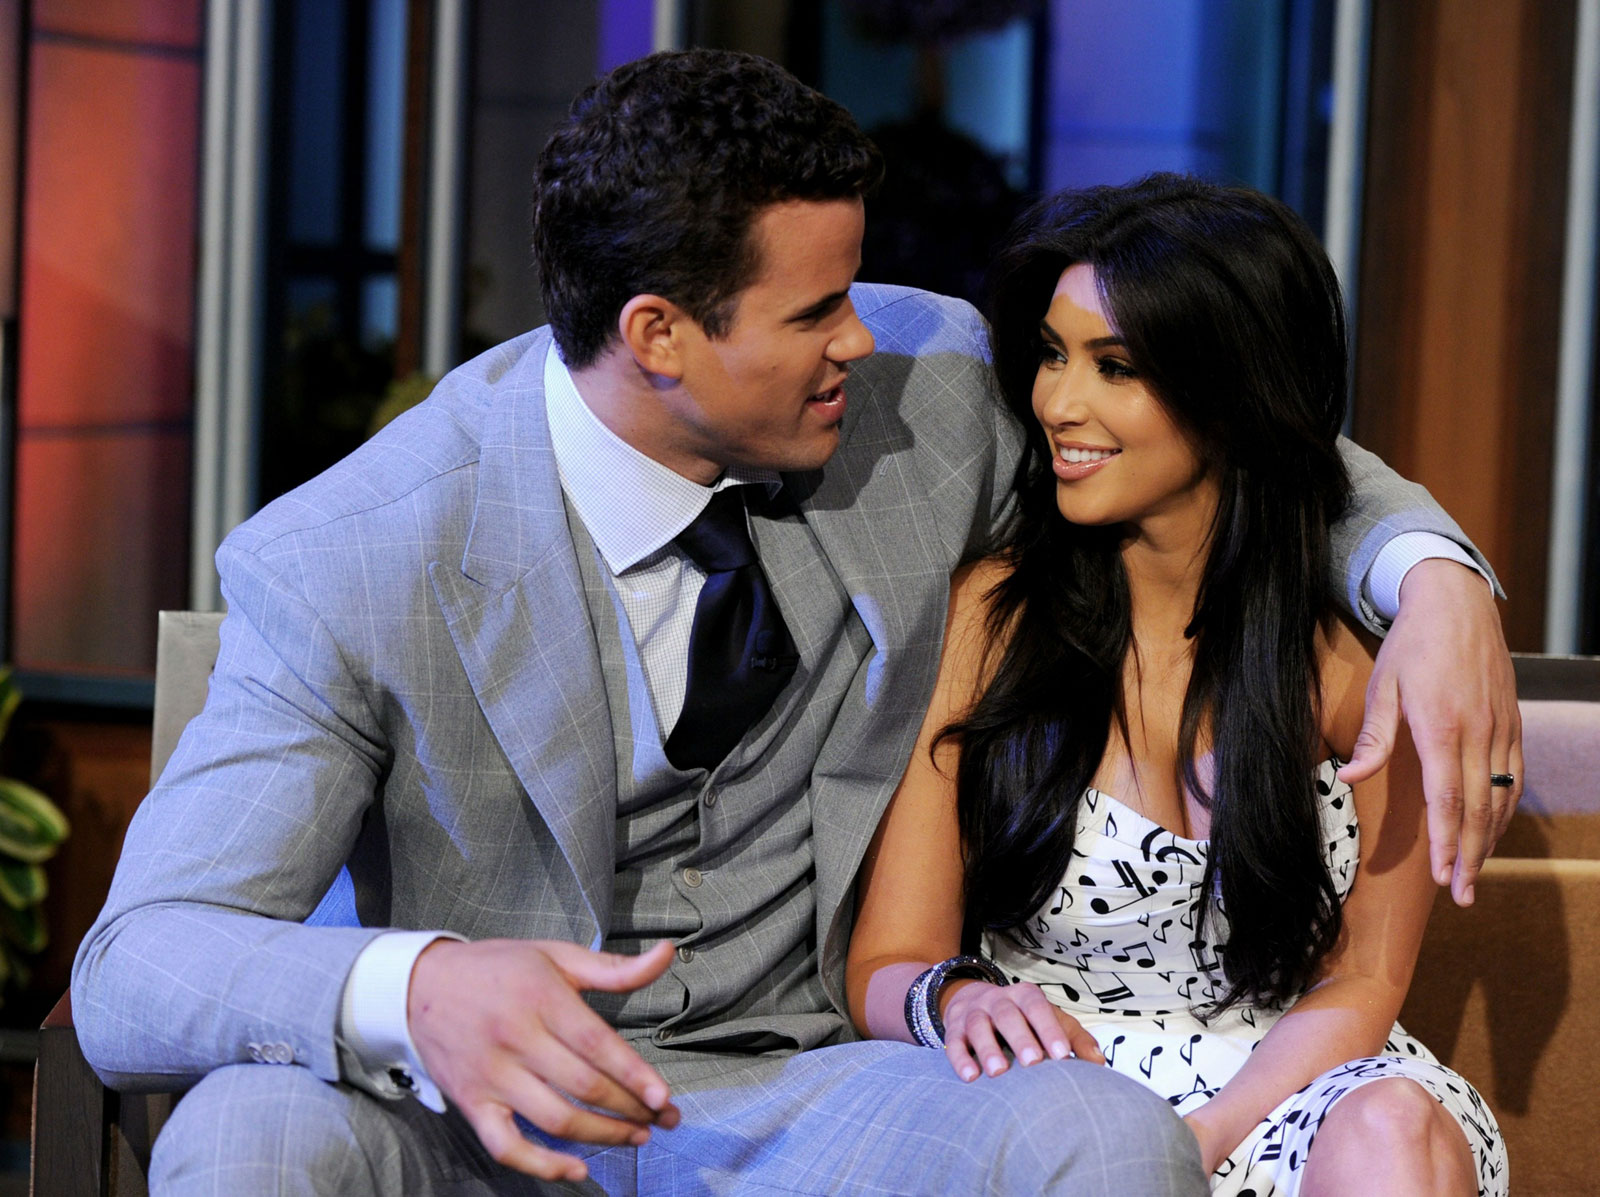 Kim Kardashian and Kris Humphries at The Tonight Show with Jay